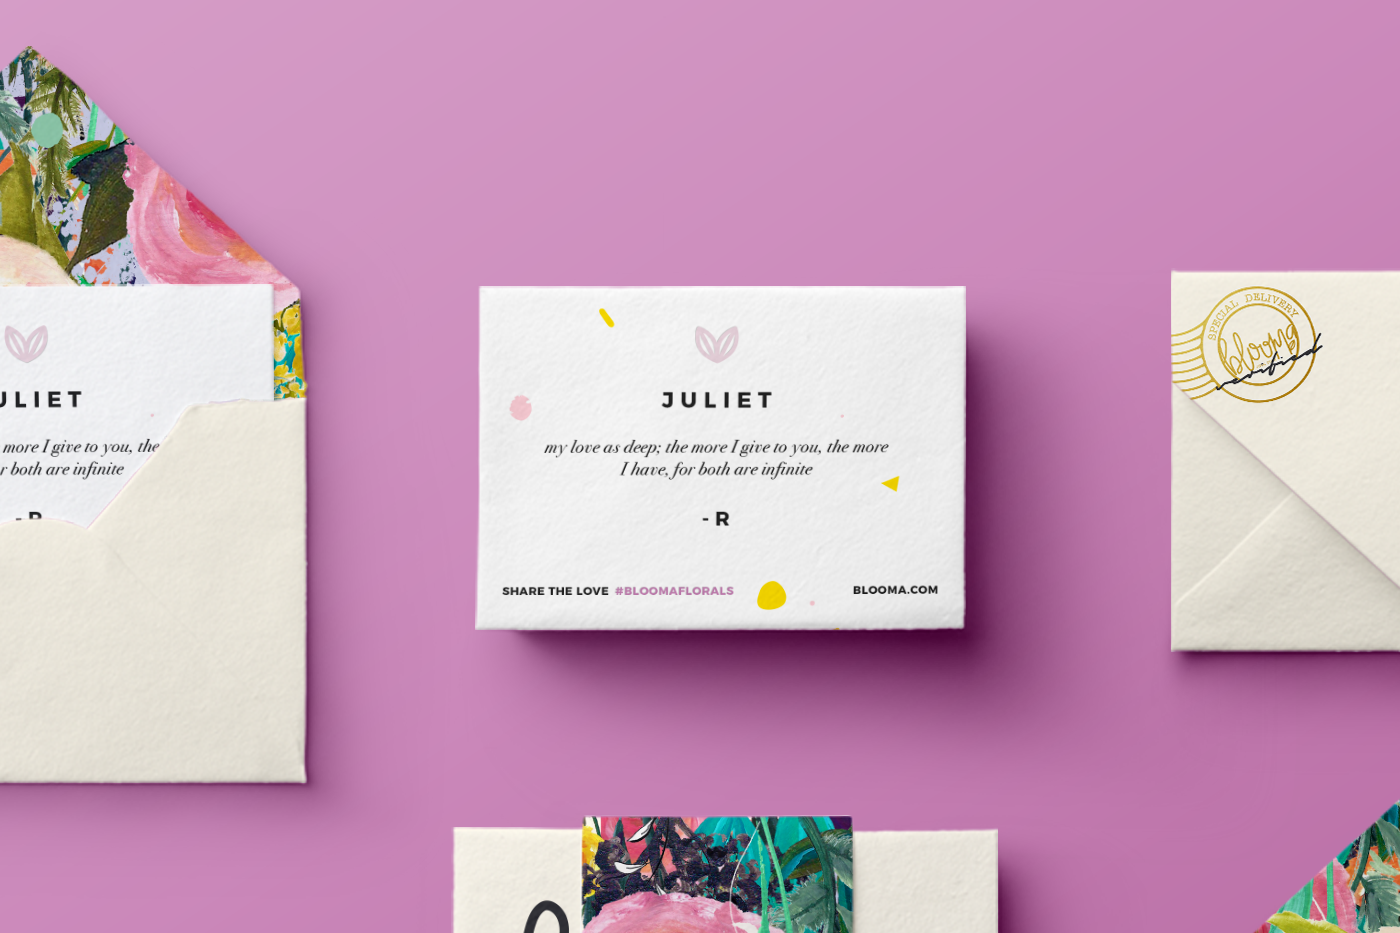 Blooma Floral Studio on Behance